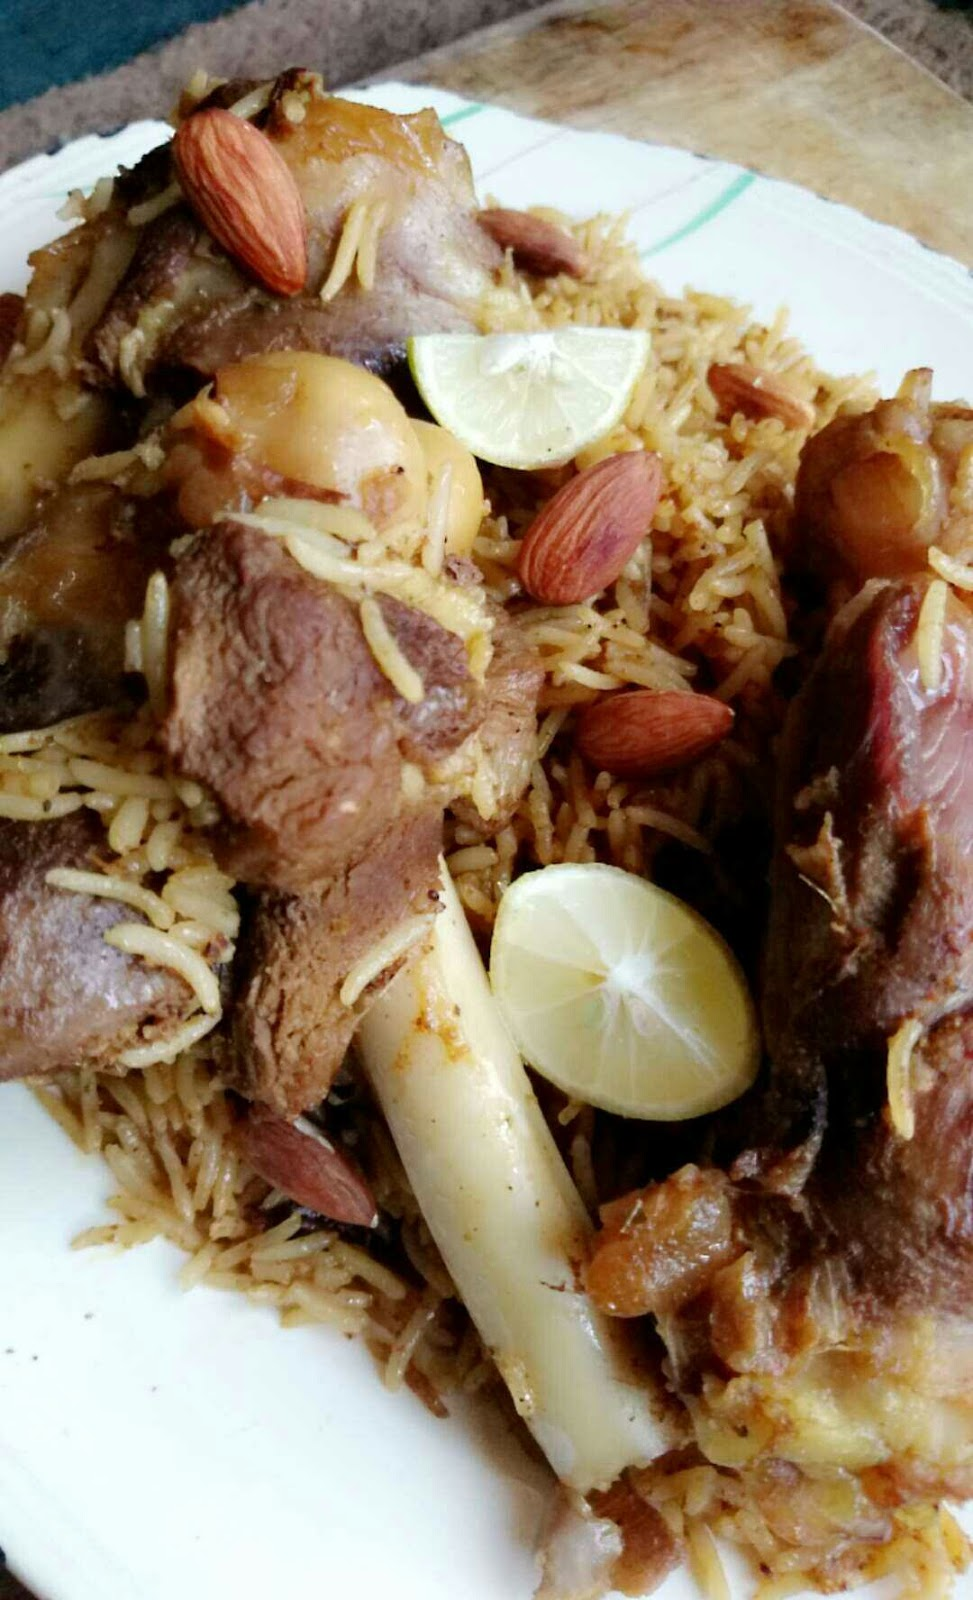 Chef shamsher mutton mandi this recipe is completely different than the chicken mandi recipe and is very very easy than it as well i saw this recipe in a youtube video forumfinder Choice Image